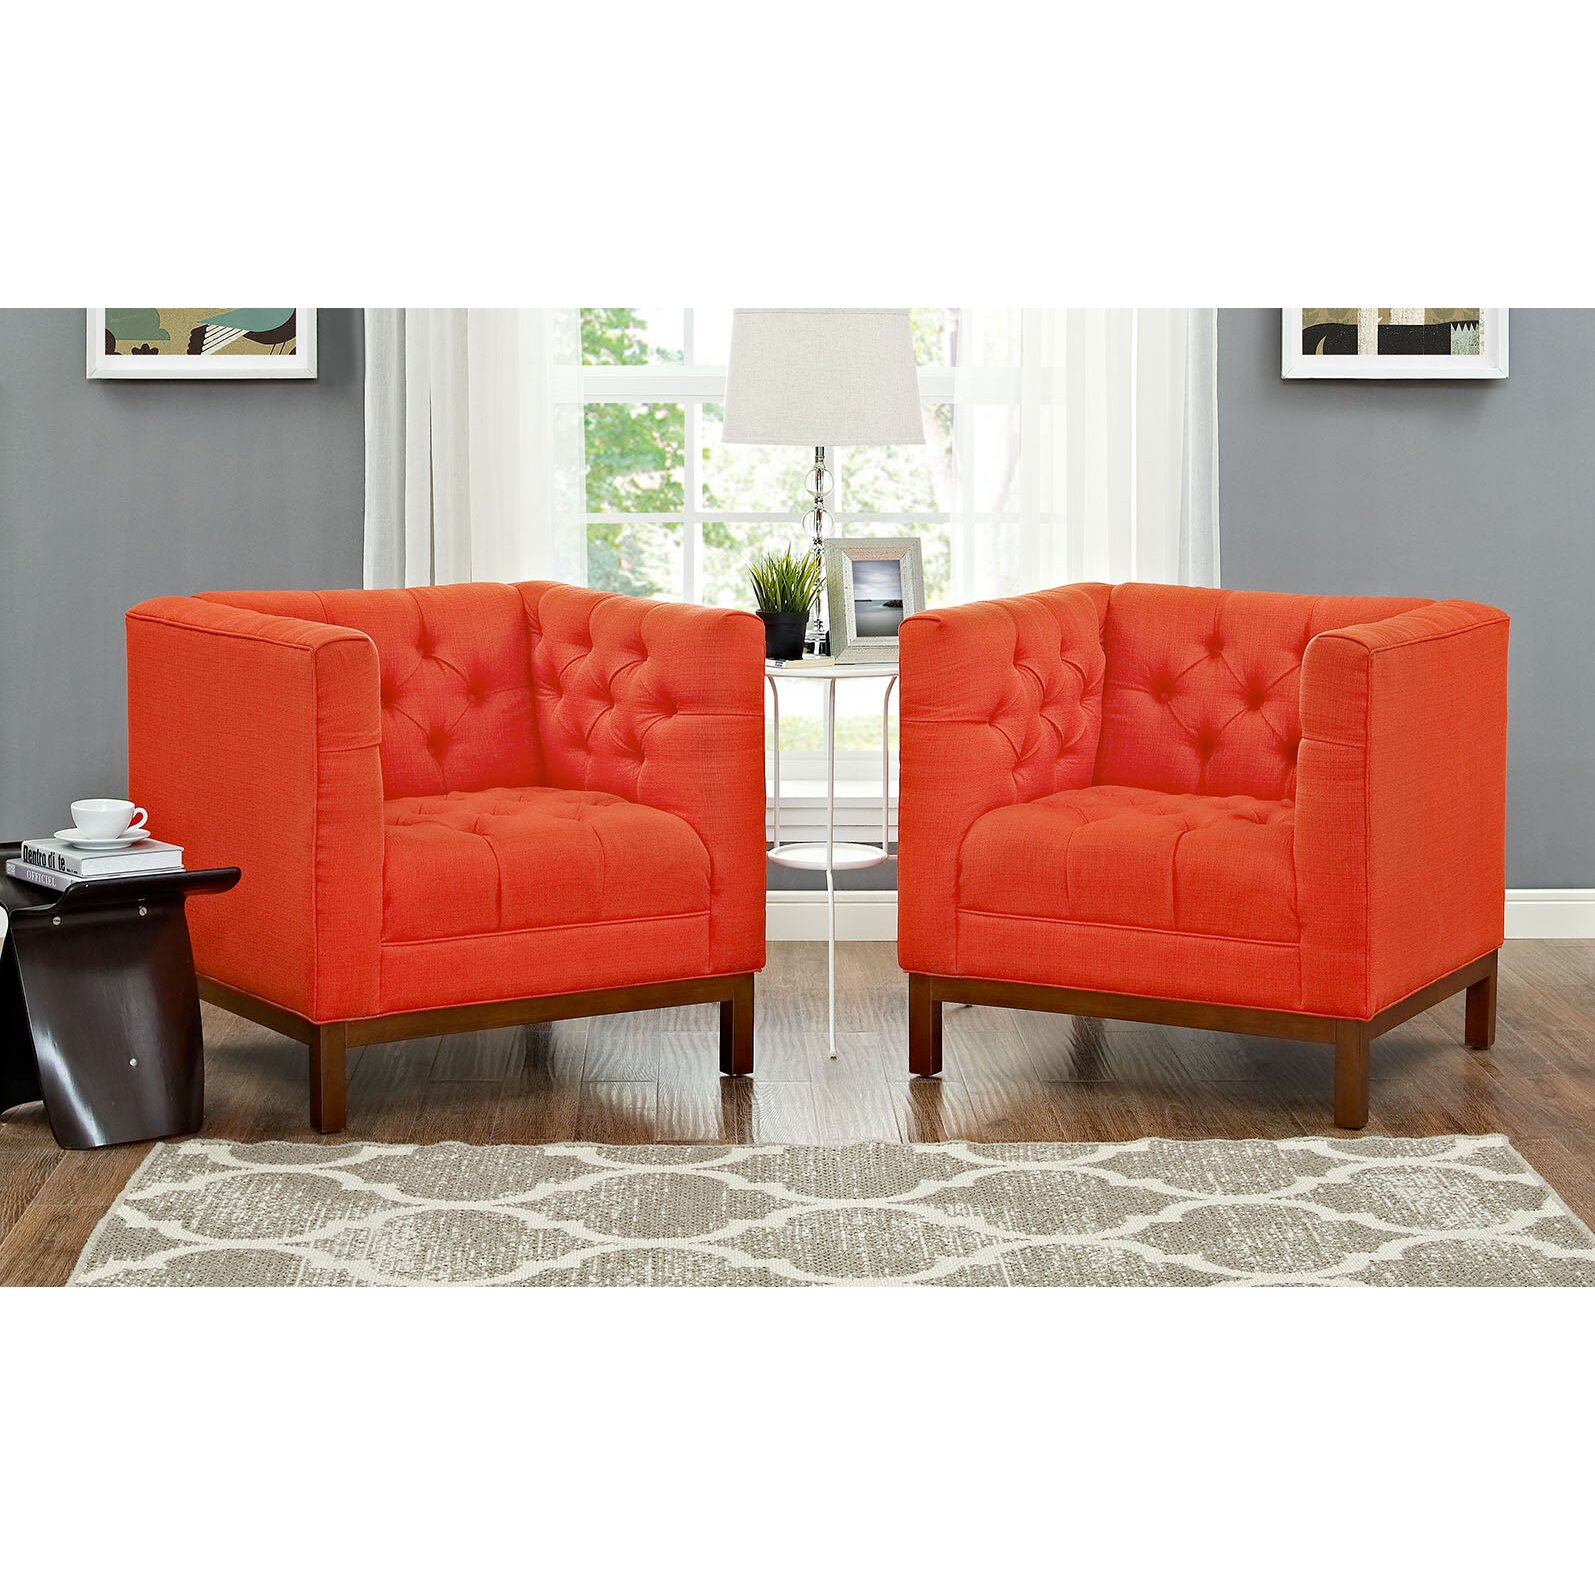 Modway Panache Fabric Living Room Armchair | Wayfair